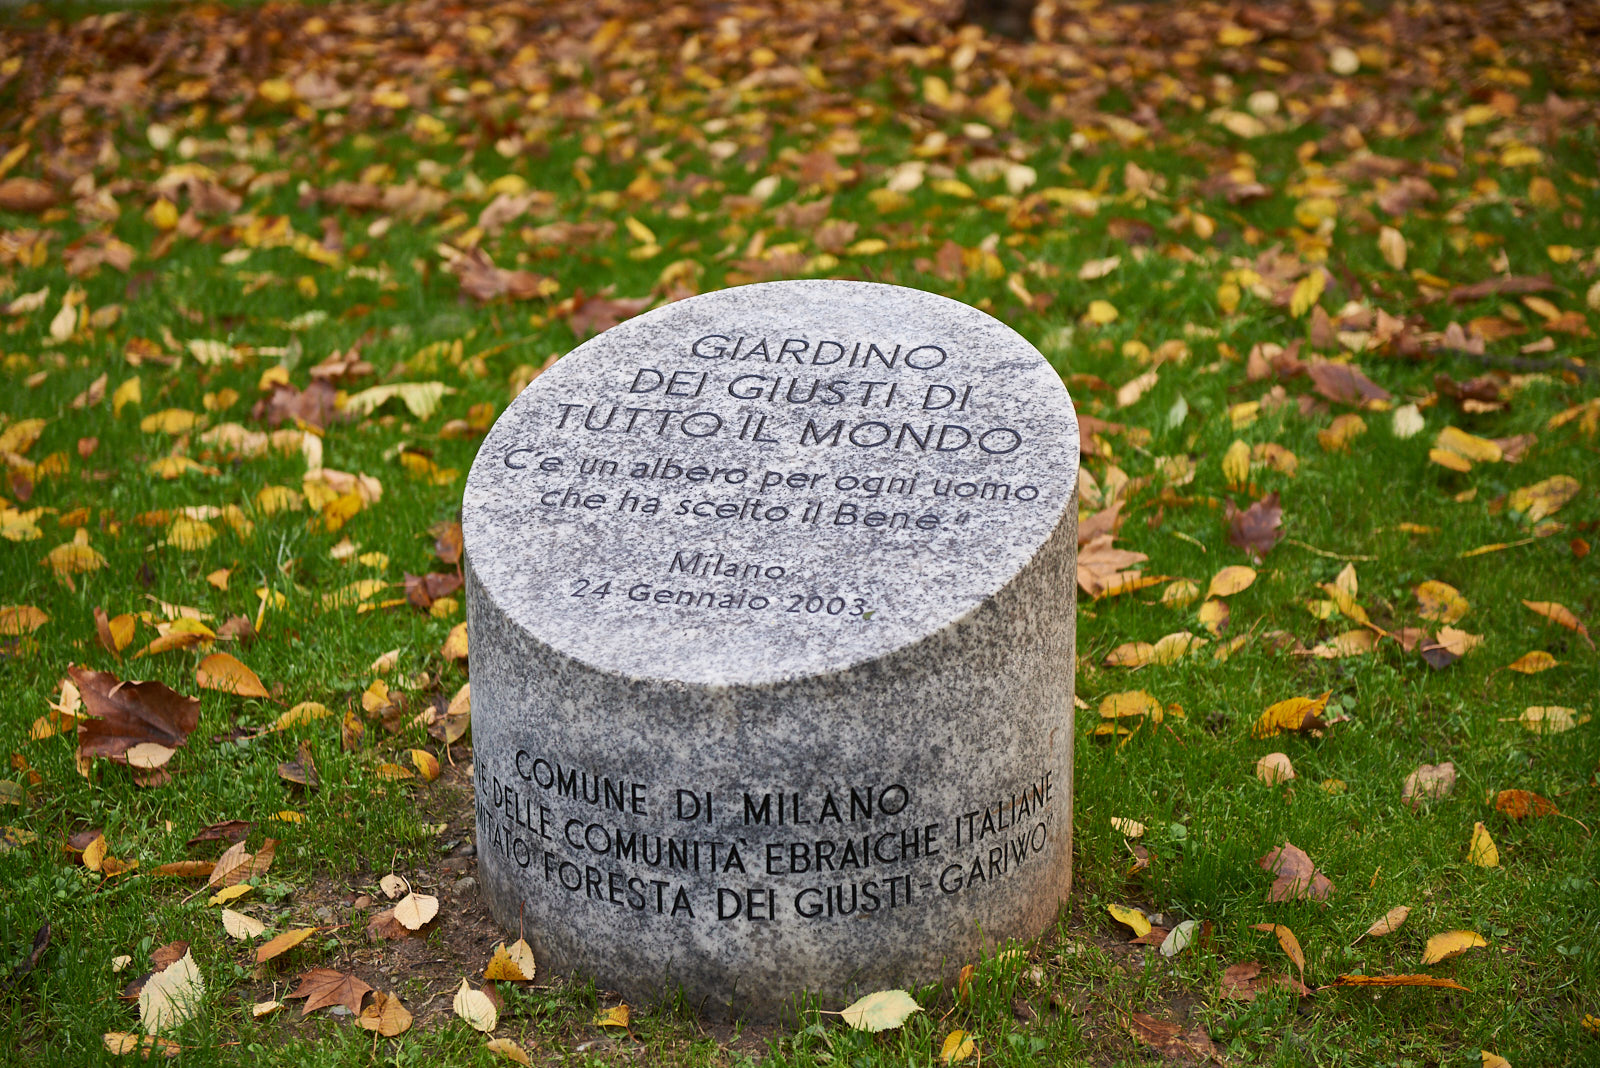 The memorial stone of the Garden of Milan